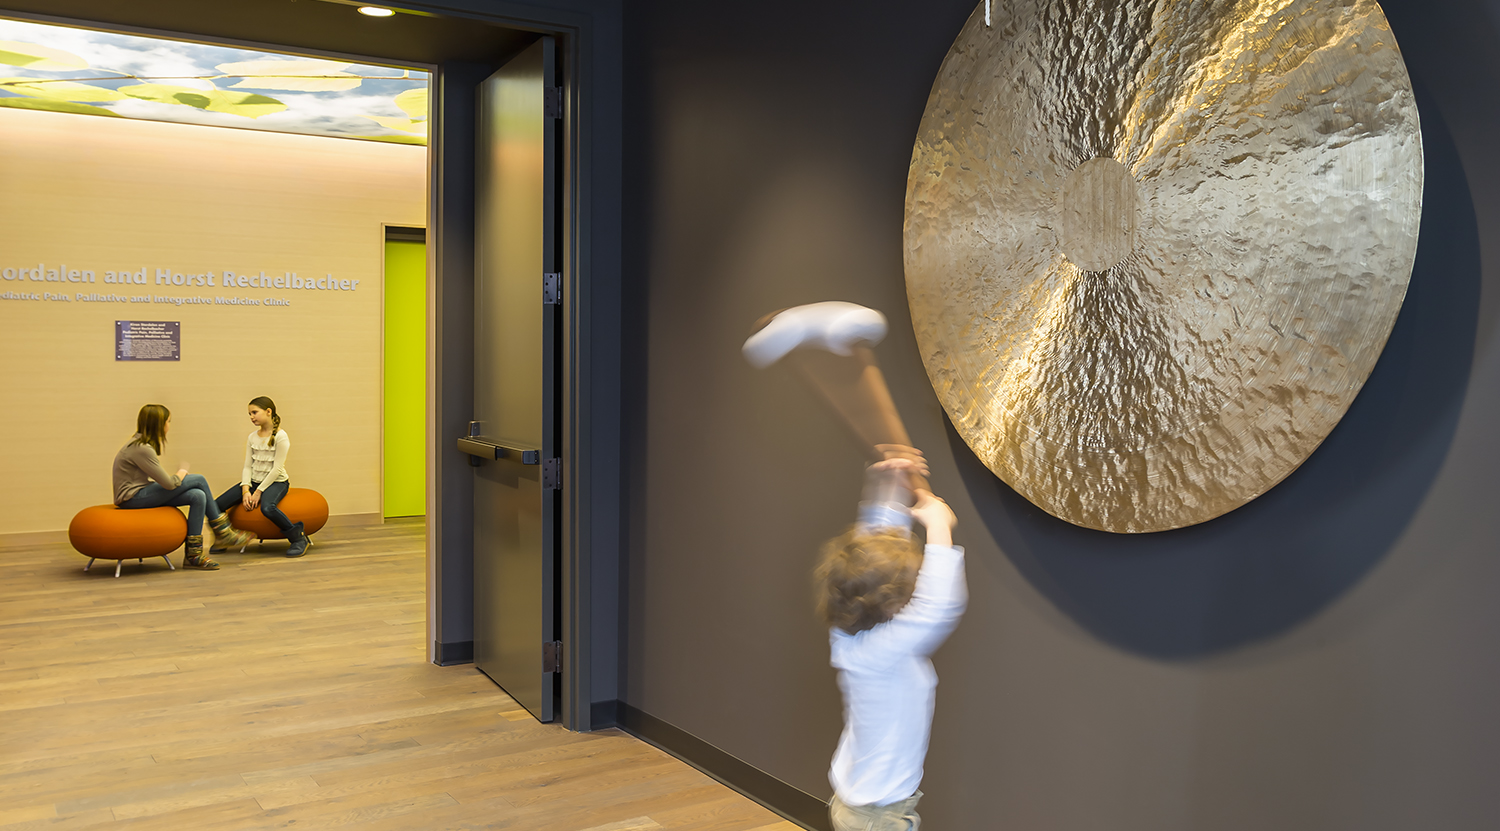 Entrance to children's pain clinic in hospital with large gong on wall